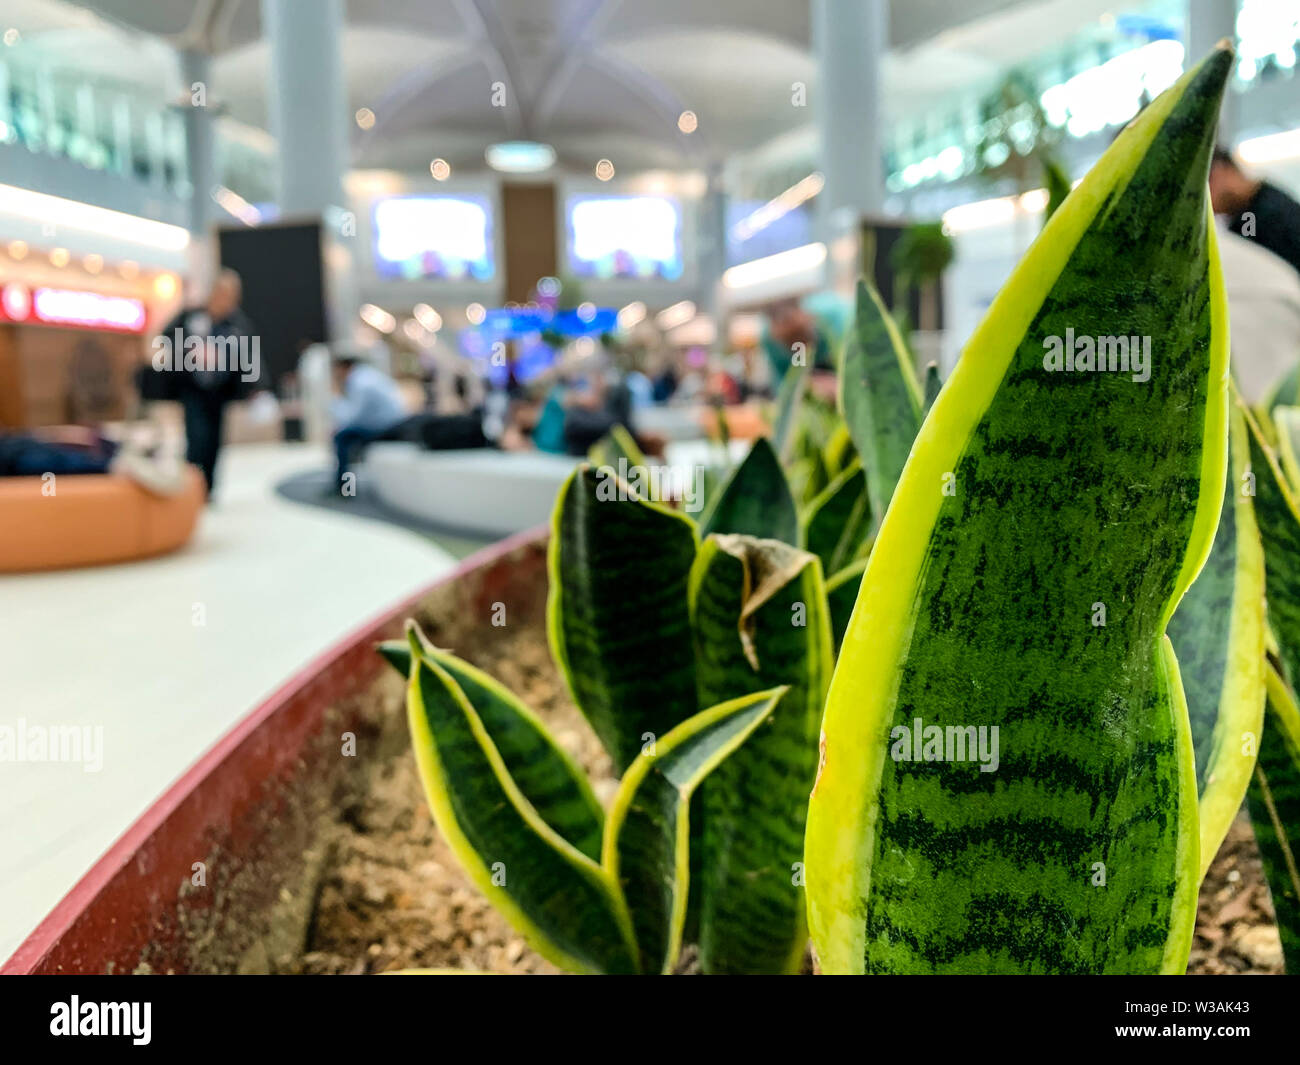 Resting area at an airport or shuttle bus area with blurred background. Selected focus on the plants. Concept of taking rest at a modern, green termin - Stock Image